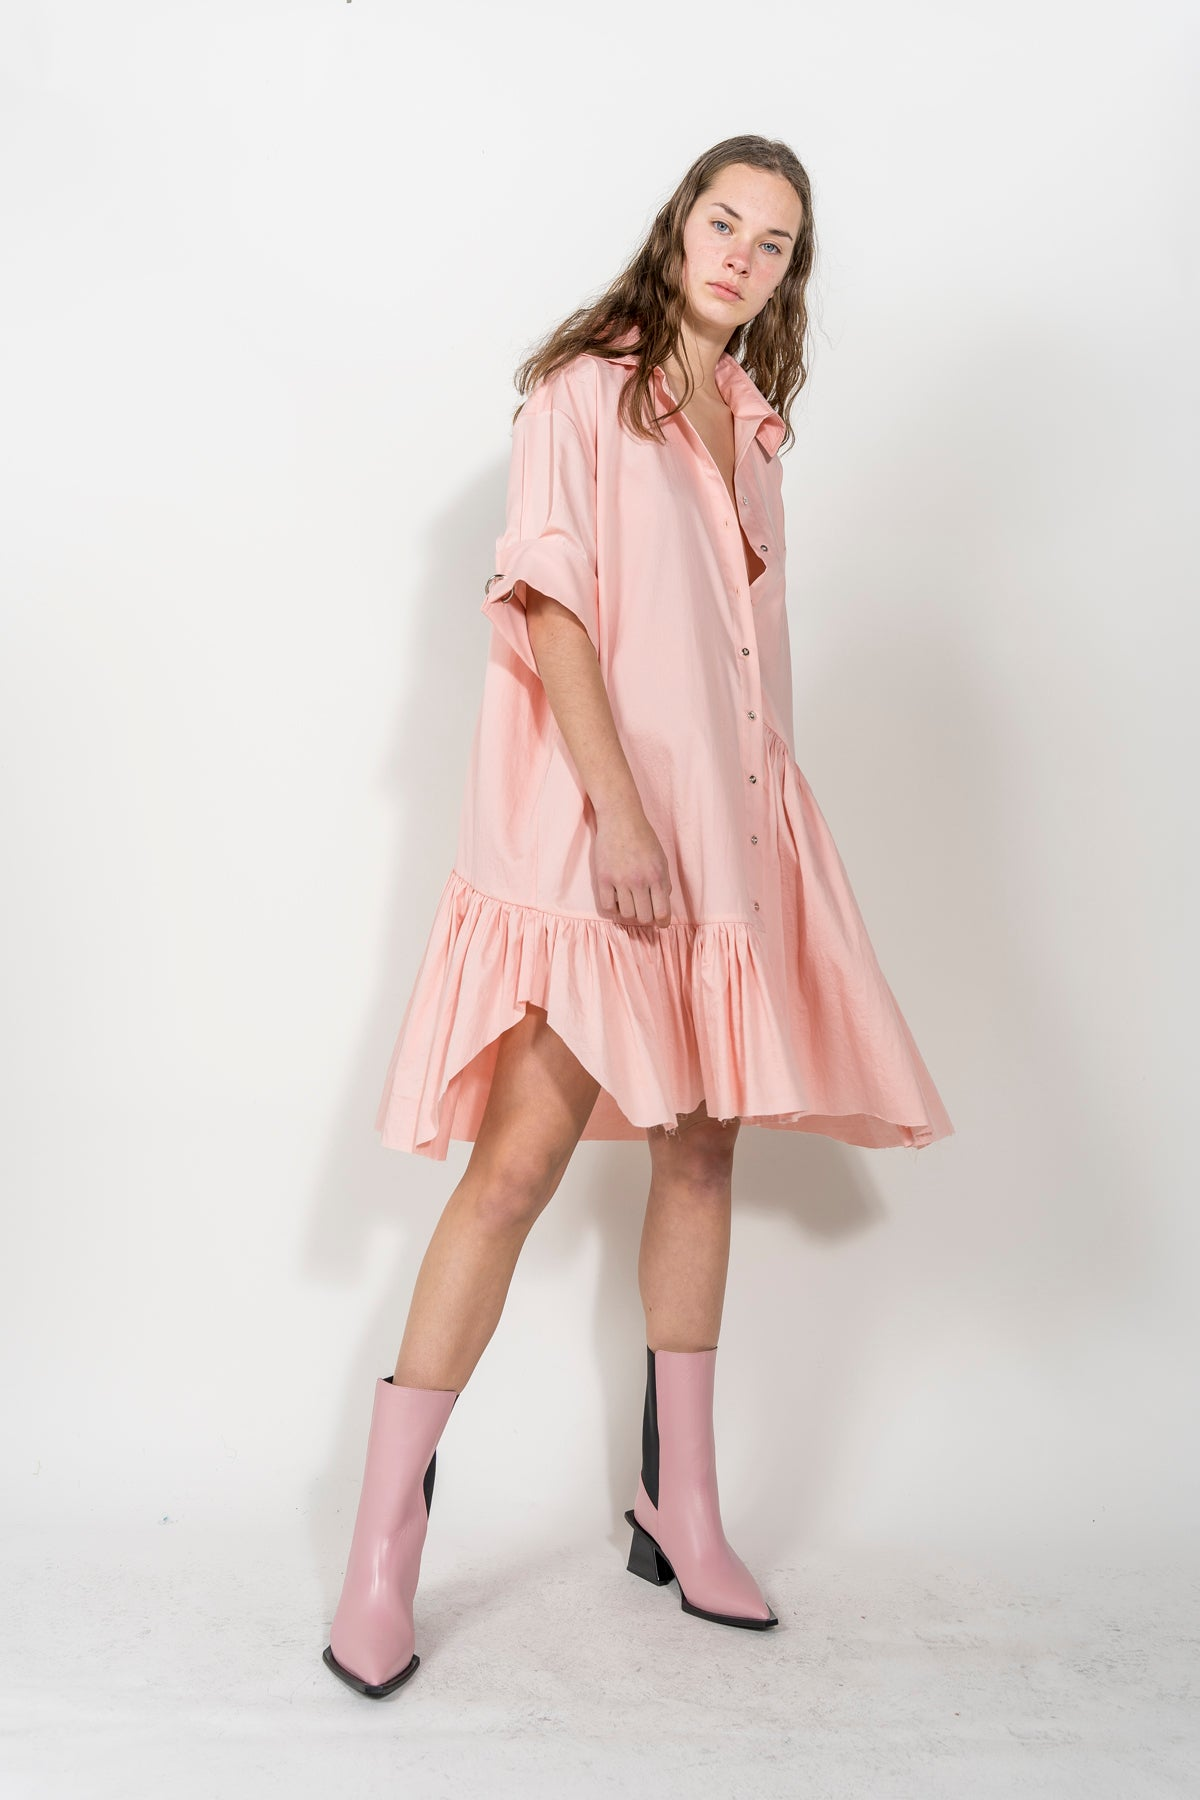 XXL SHORT SLEEVE SHIRT DRESS IN PINK MARQUES ALMEIDA